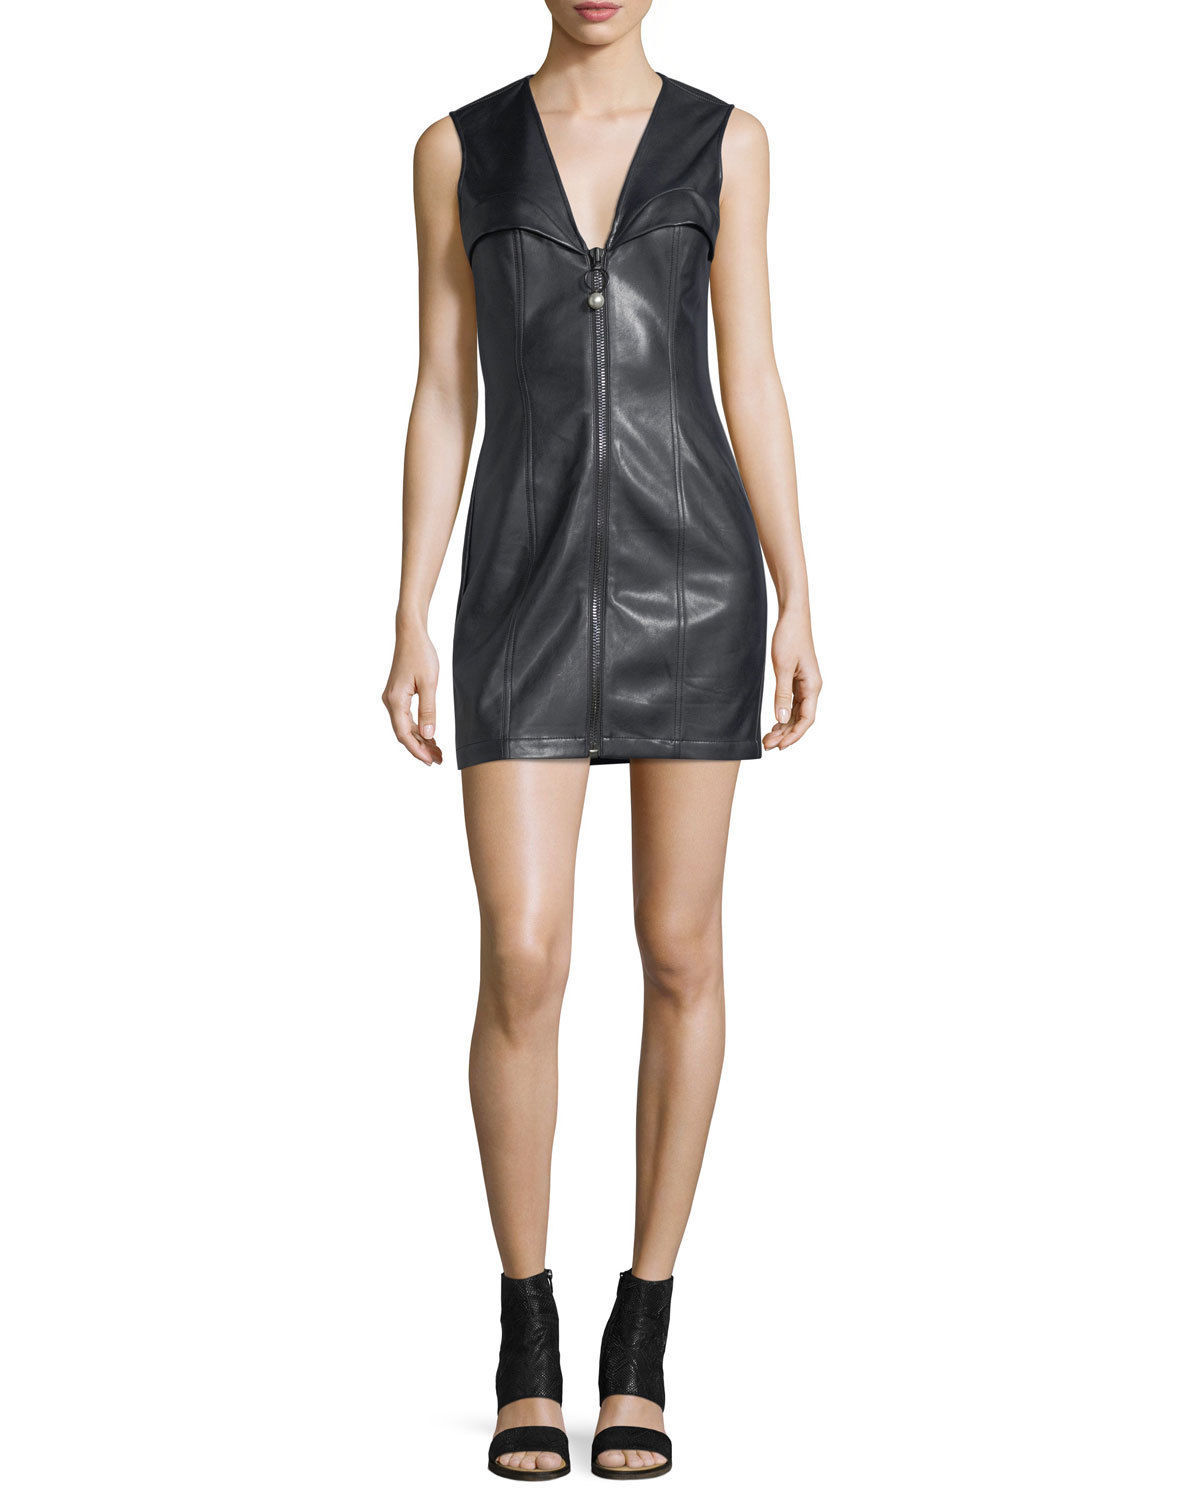 Bustier sleeveless Center Zip-Front Genuine Leather Lambskin Party Dress-GW41